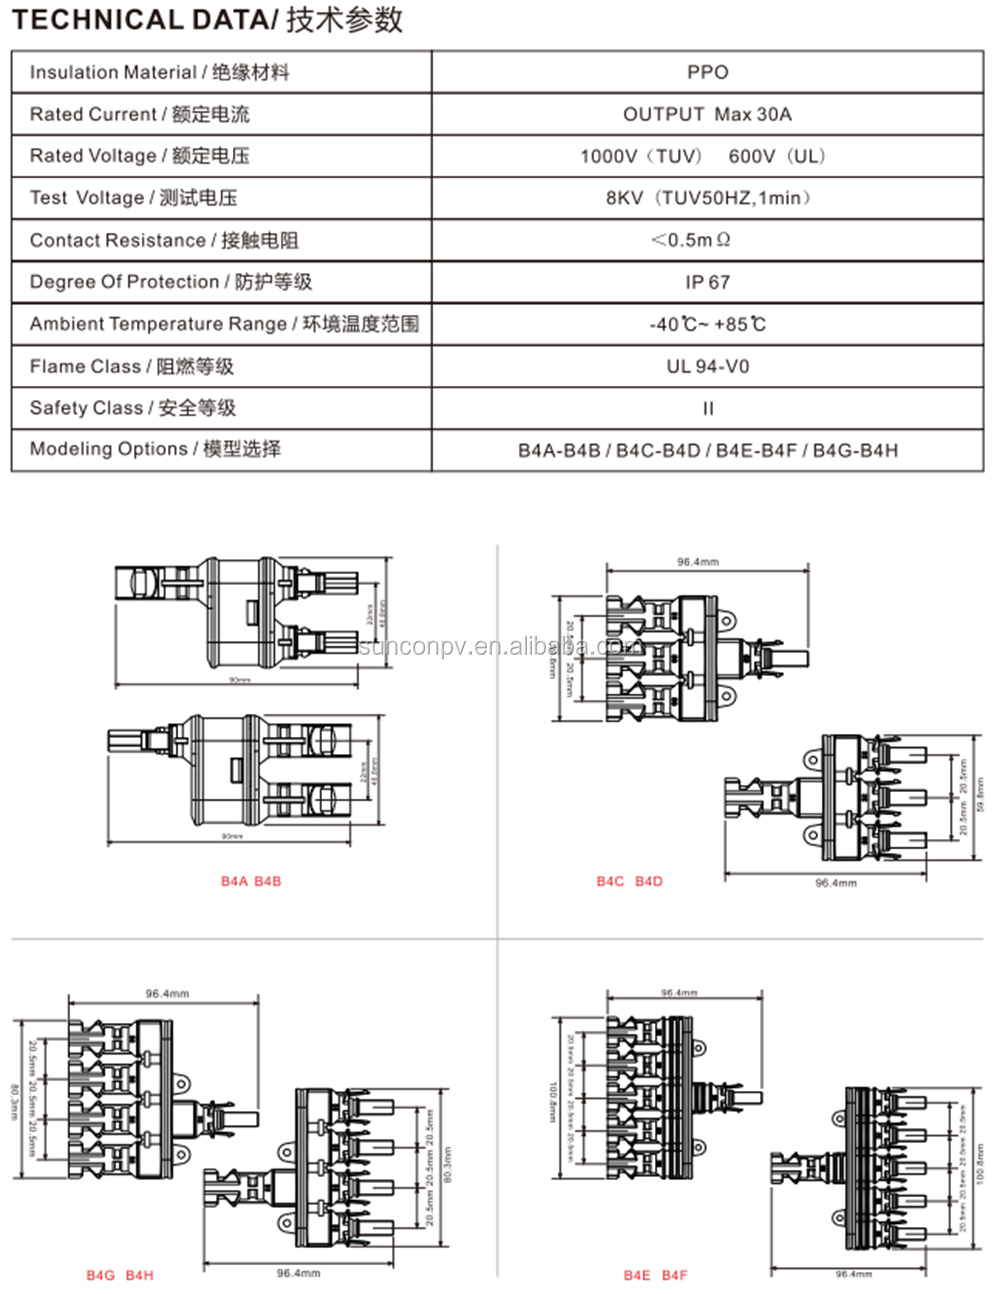 MC4 pv 5 in 1 out 5-way solar branch connector socket ip67 FMMMMM+MFFFFF